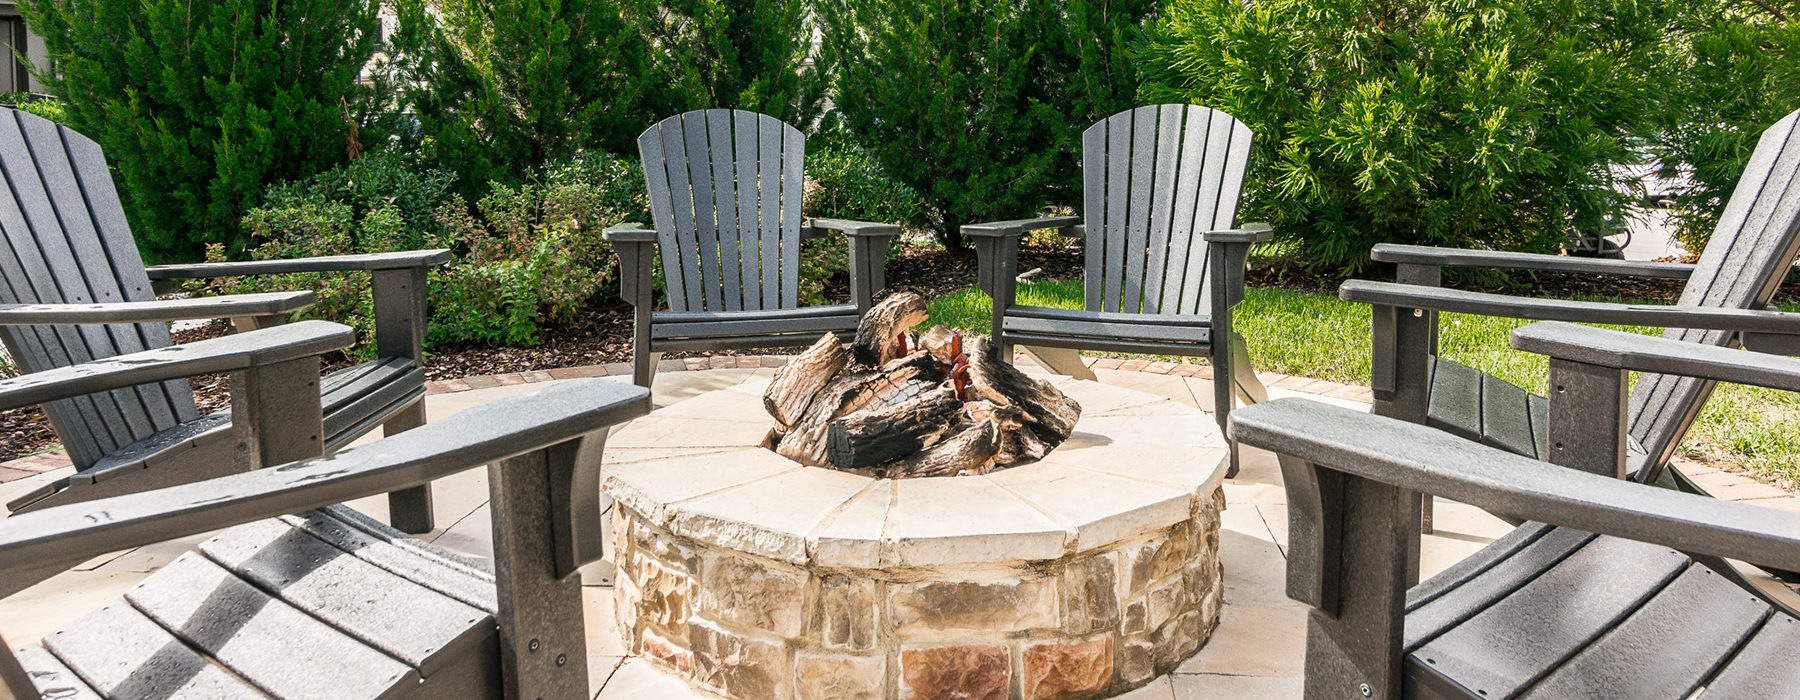 Firepits near the sparkling pool with ample seating